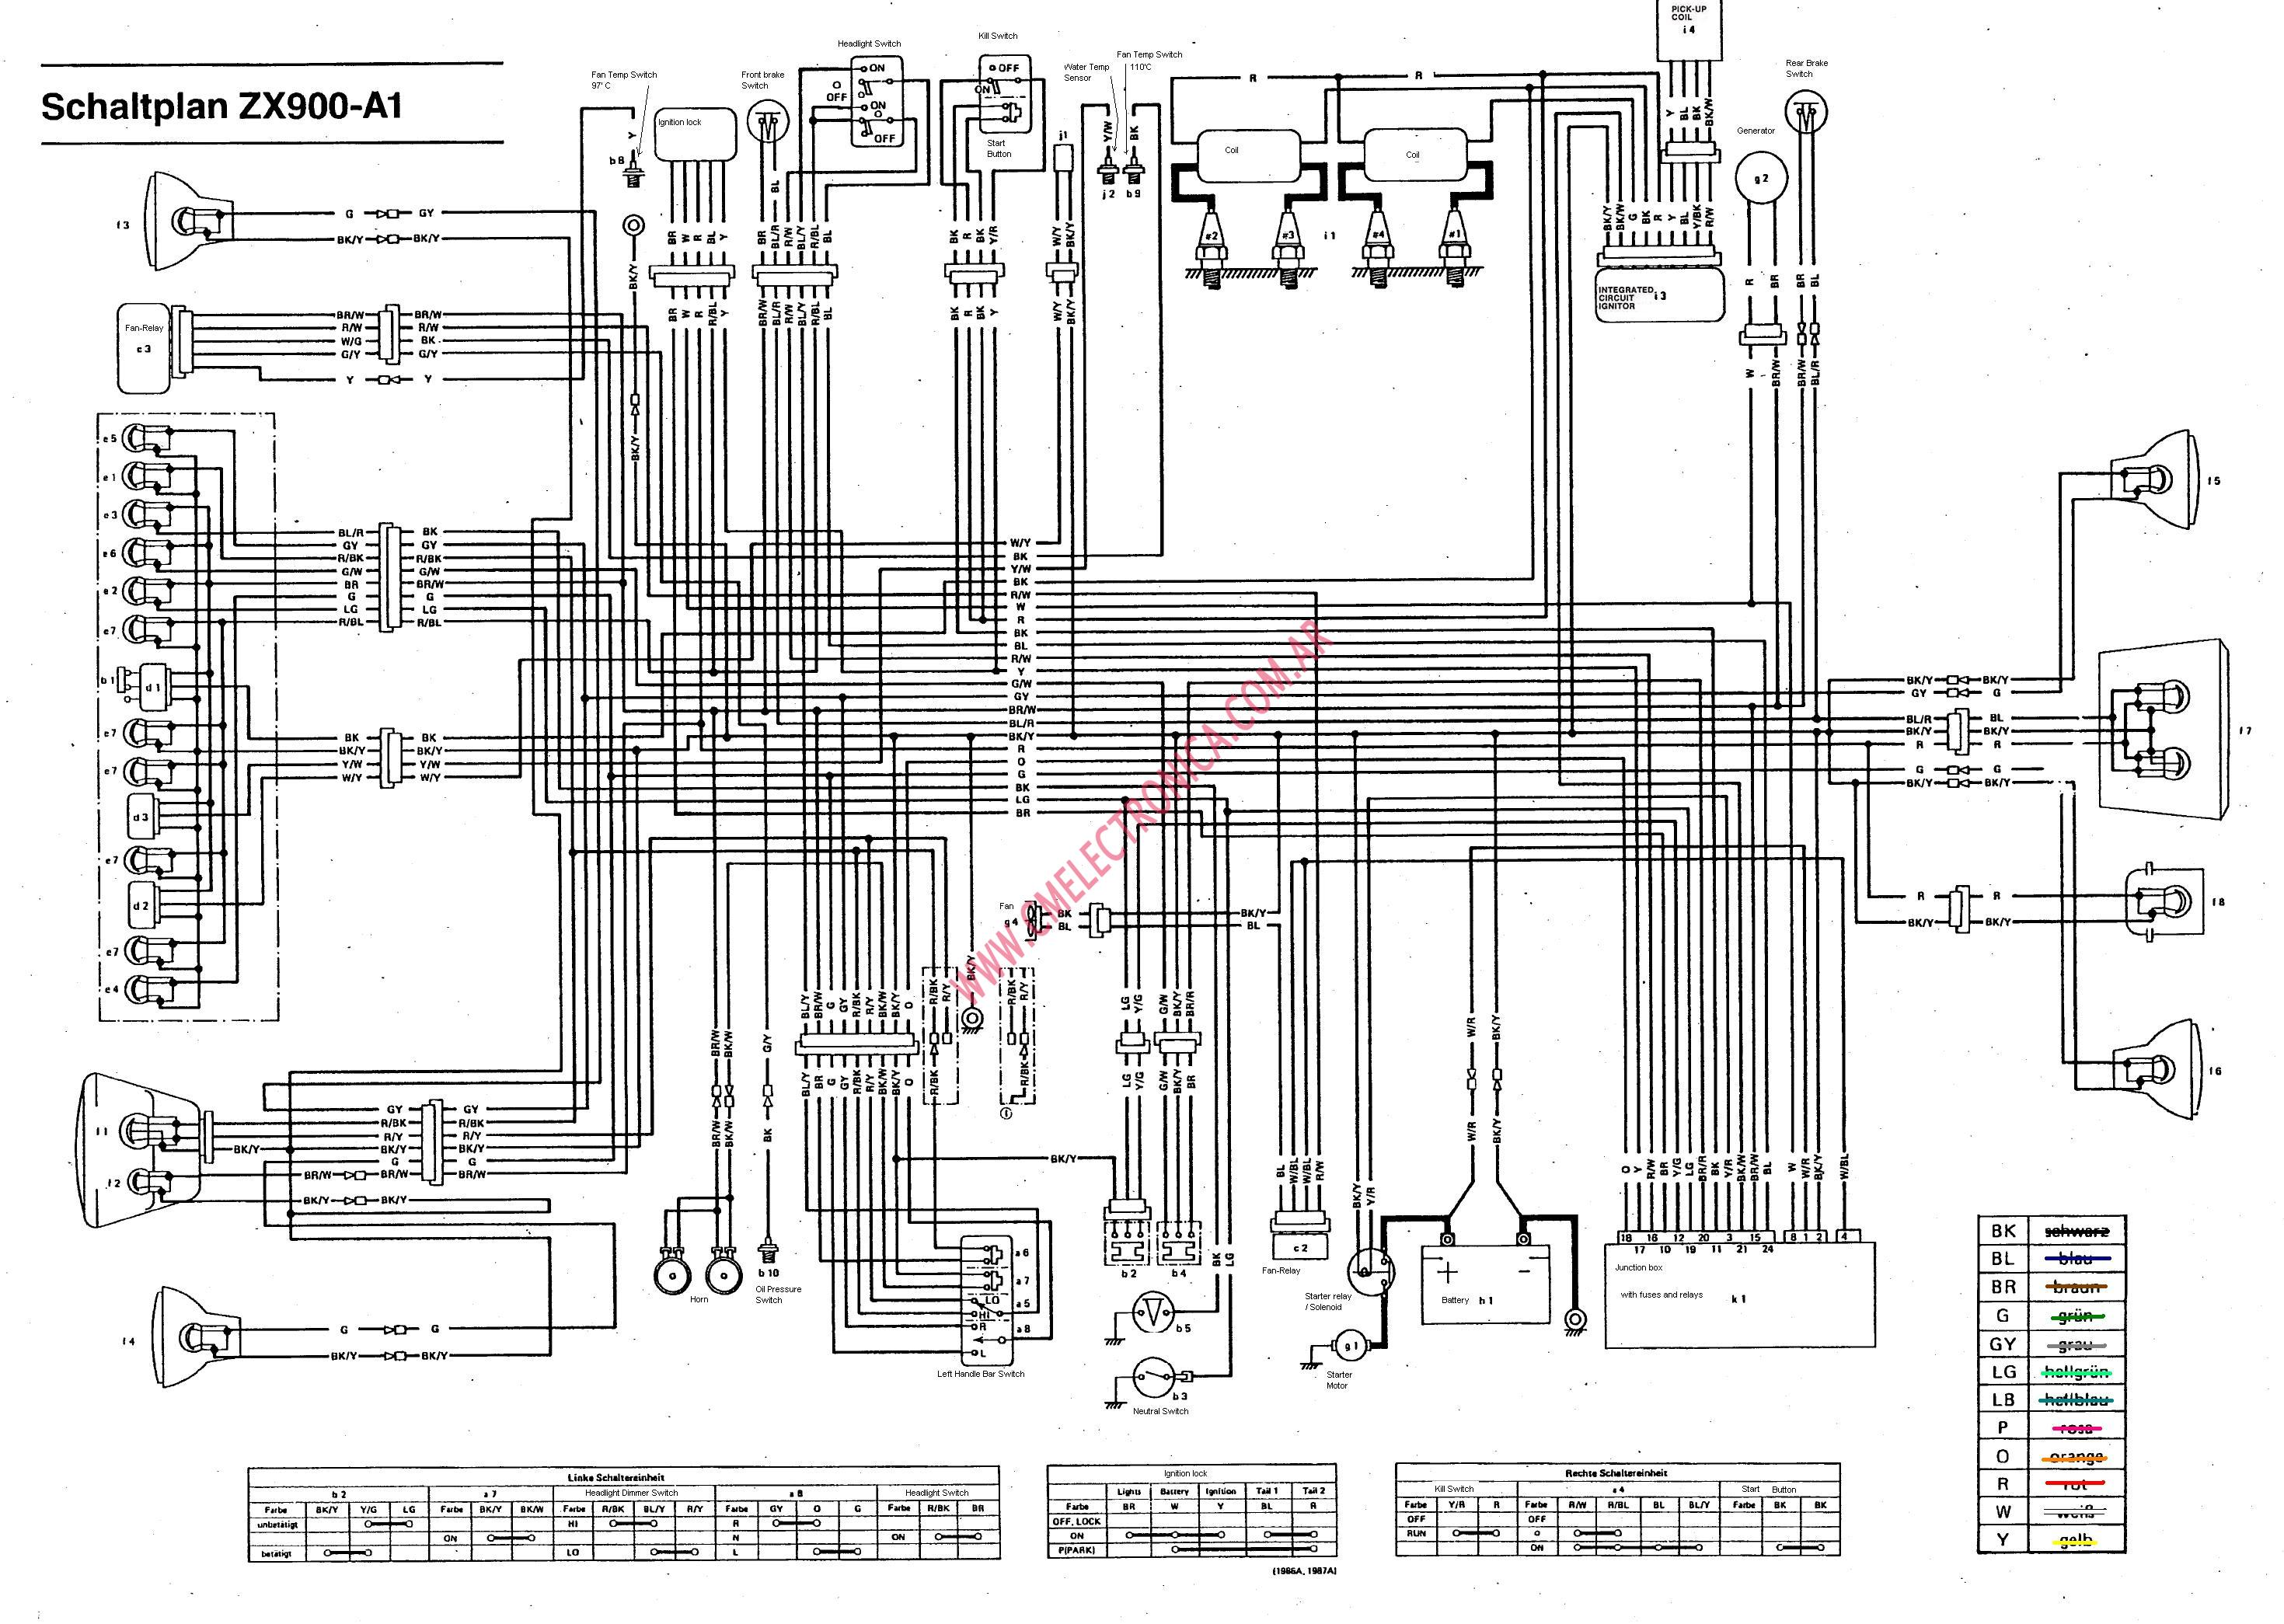 2003 yamaha yzf r6 service manual and wiring diagram pdf